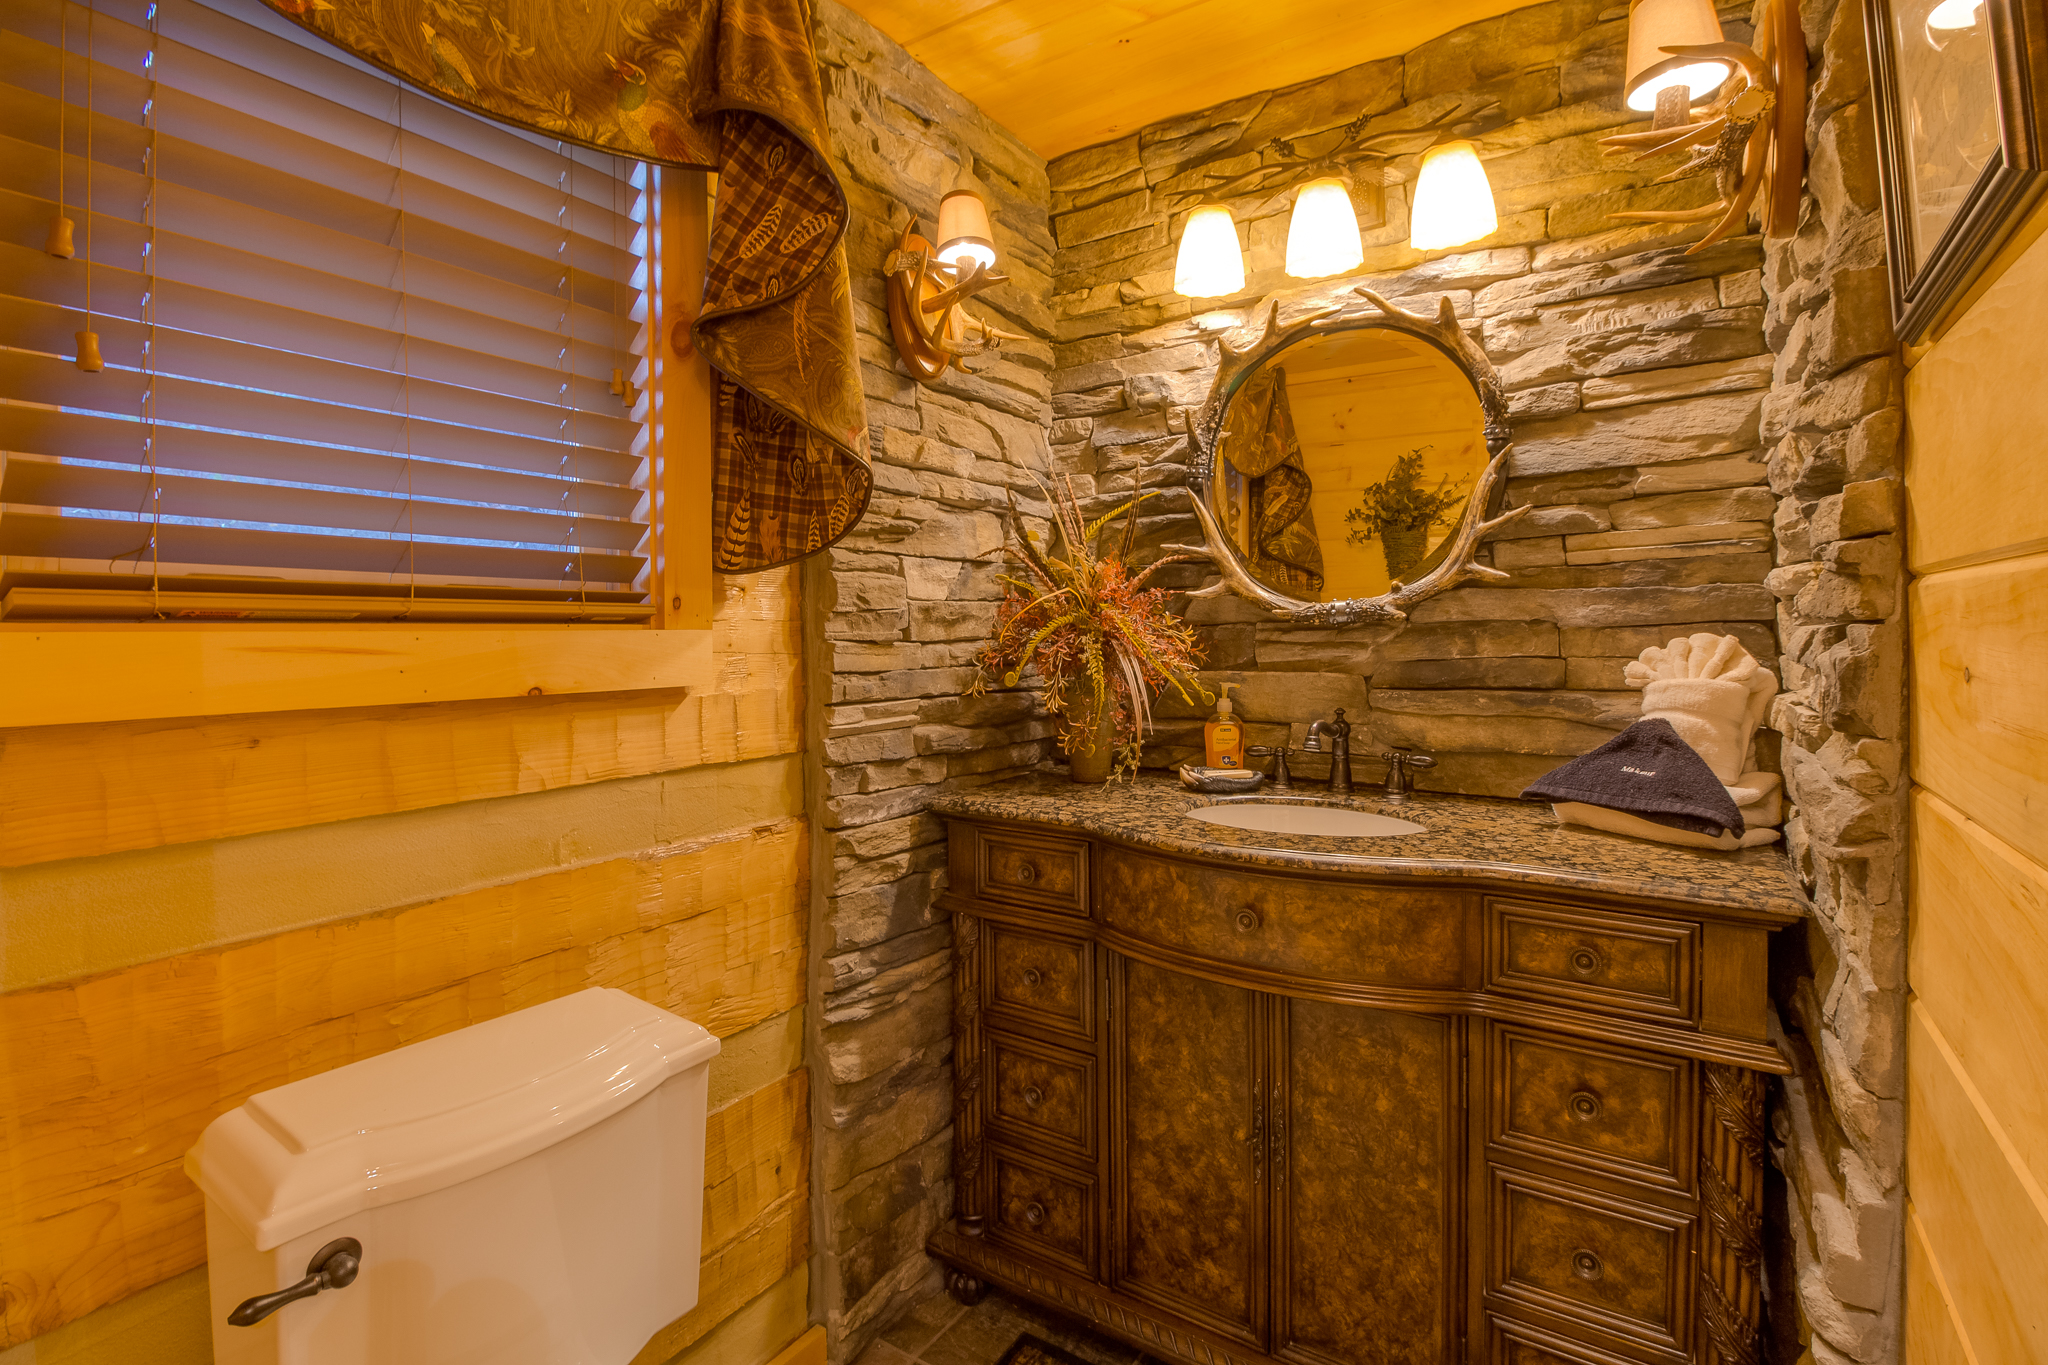 gatlinburg cabins gatlburg tn pigeon tennessee interior mountains smoky cheap in hotels forge pet friendly